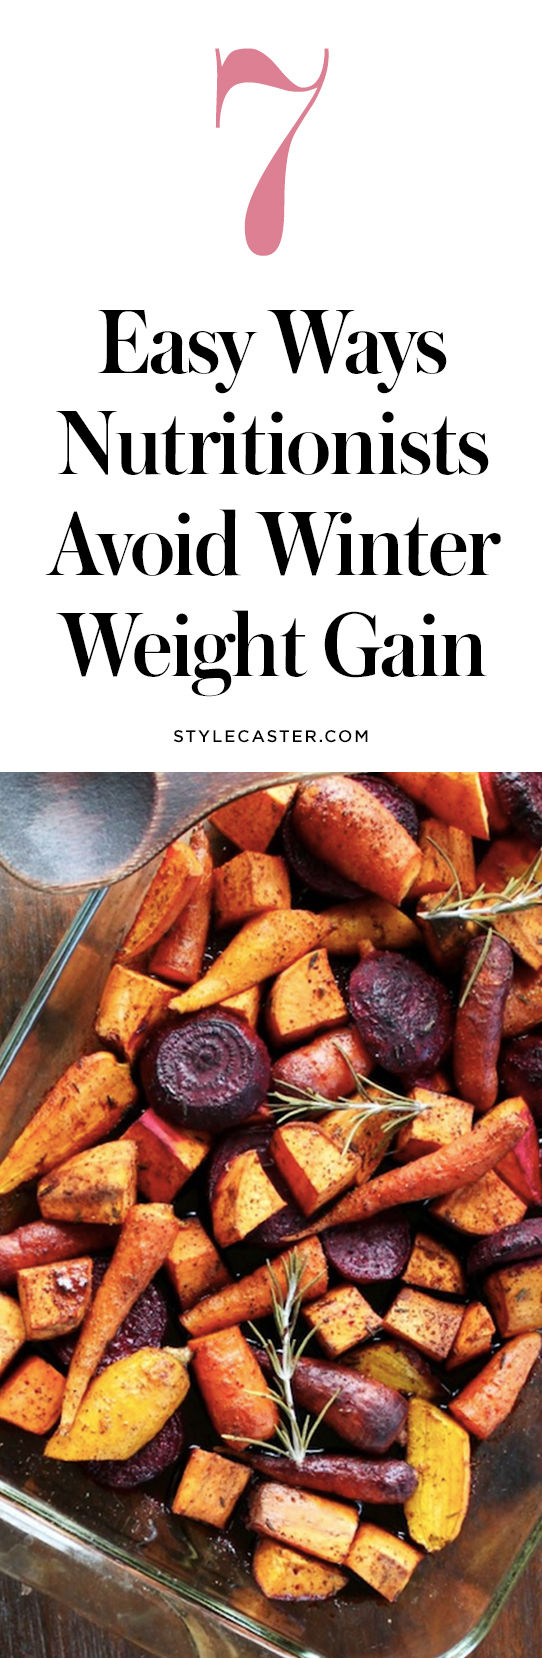 How to avoid winter weight gain | @stylecaster